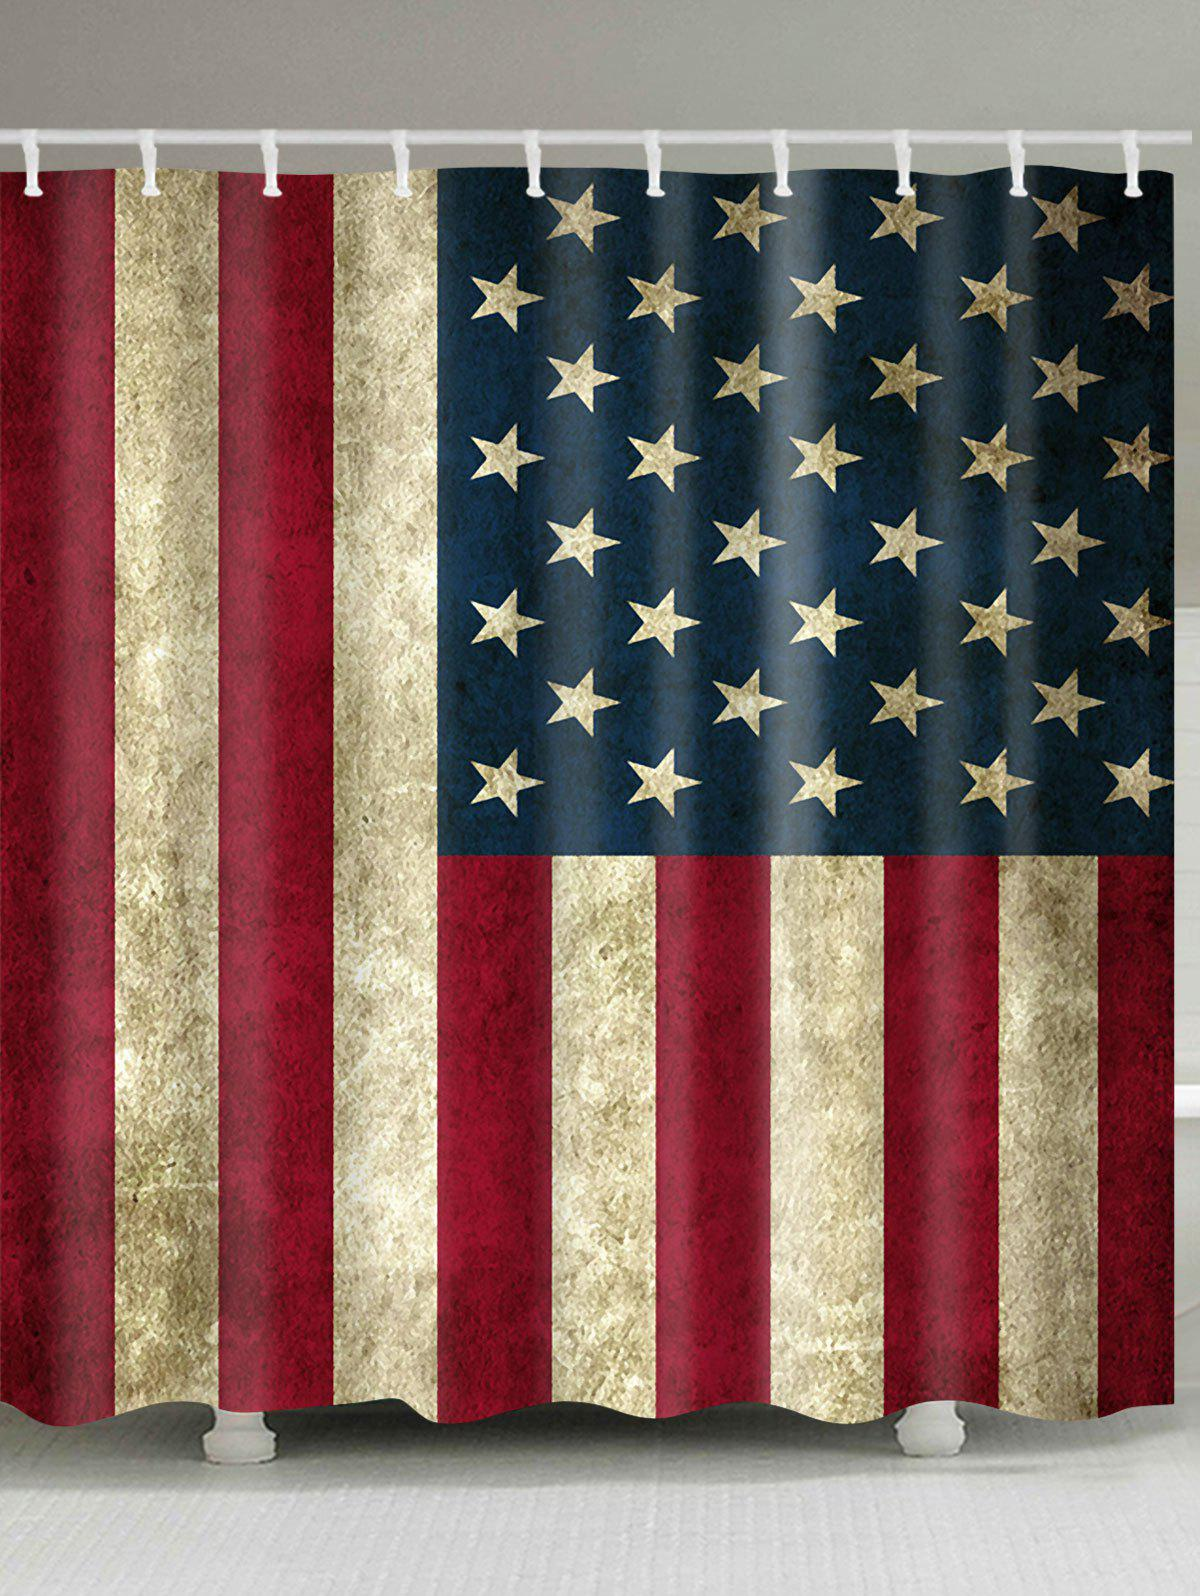 2018 waterproof fabric patriotic american flag print for Bathroom accessories kuwait